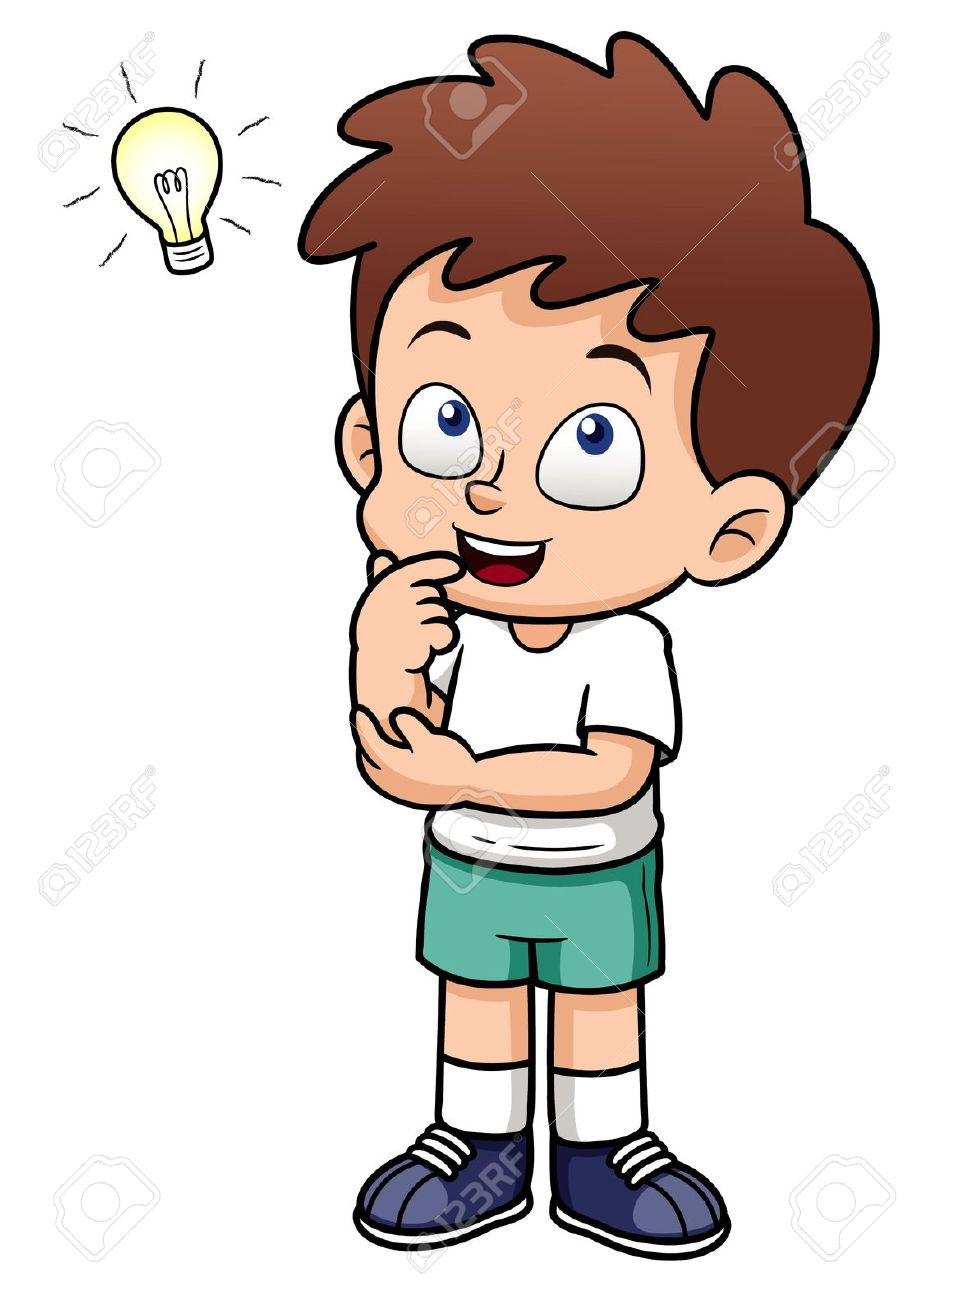 Child Thinking Clipart #14285